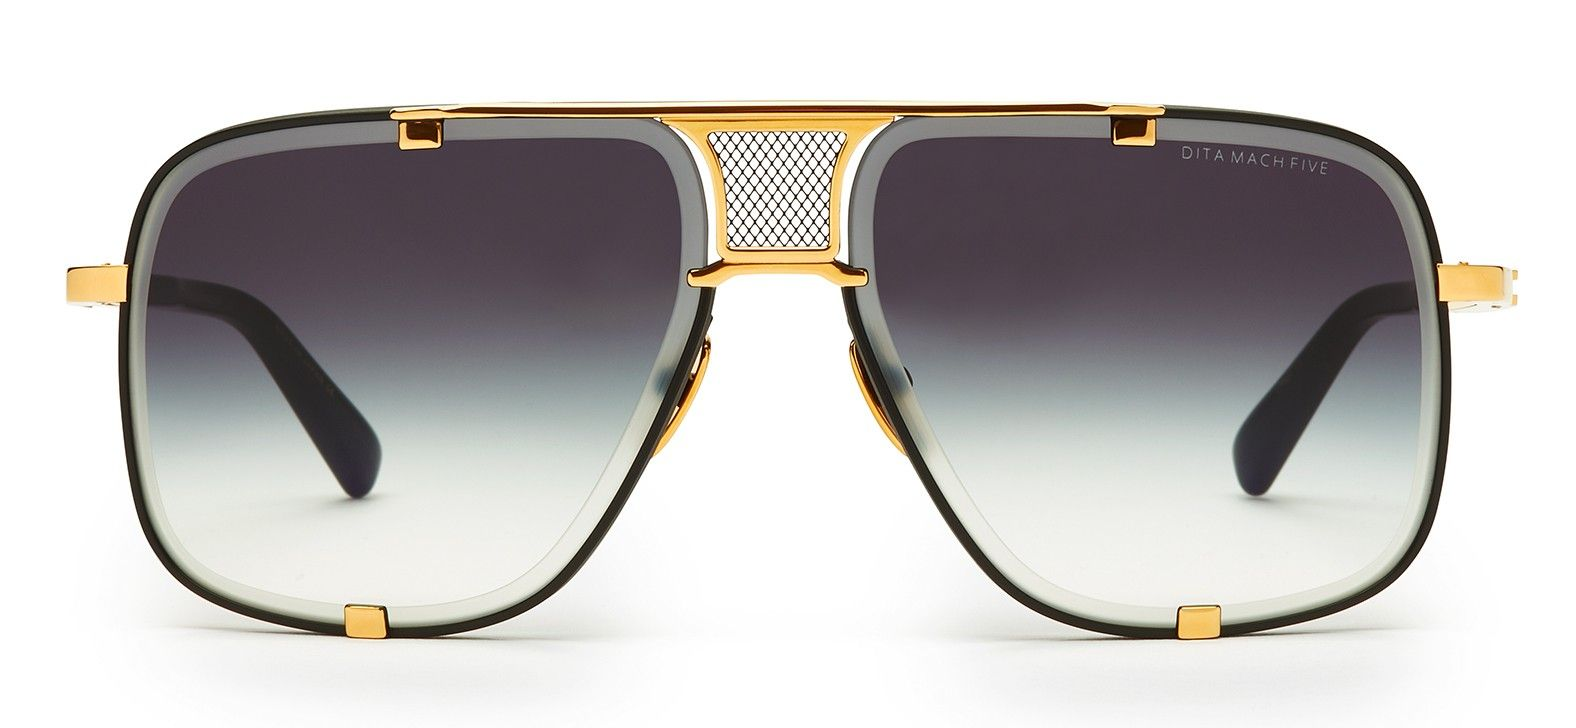 7e4f79bfdd The MACH-FIVE Aviator Sunglasses by DITA Eyewear.